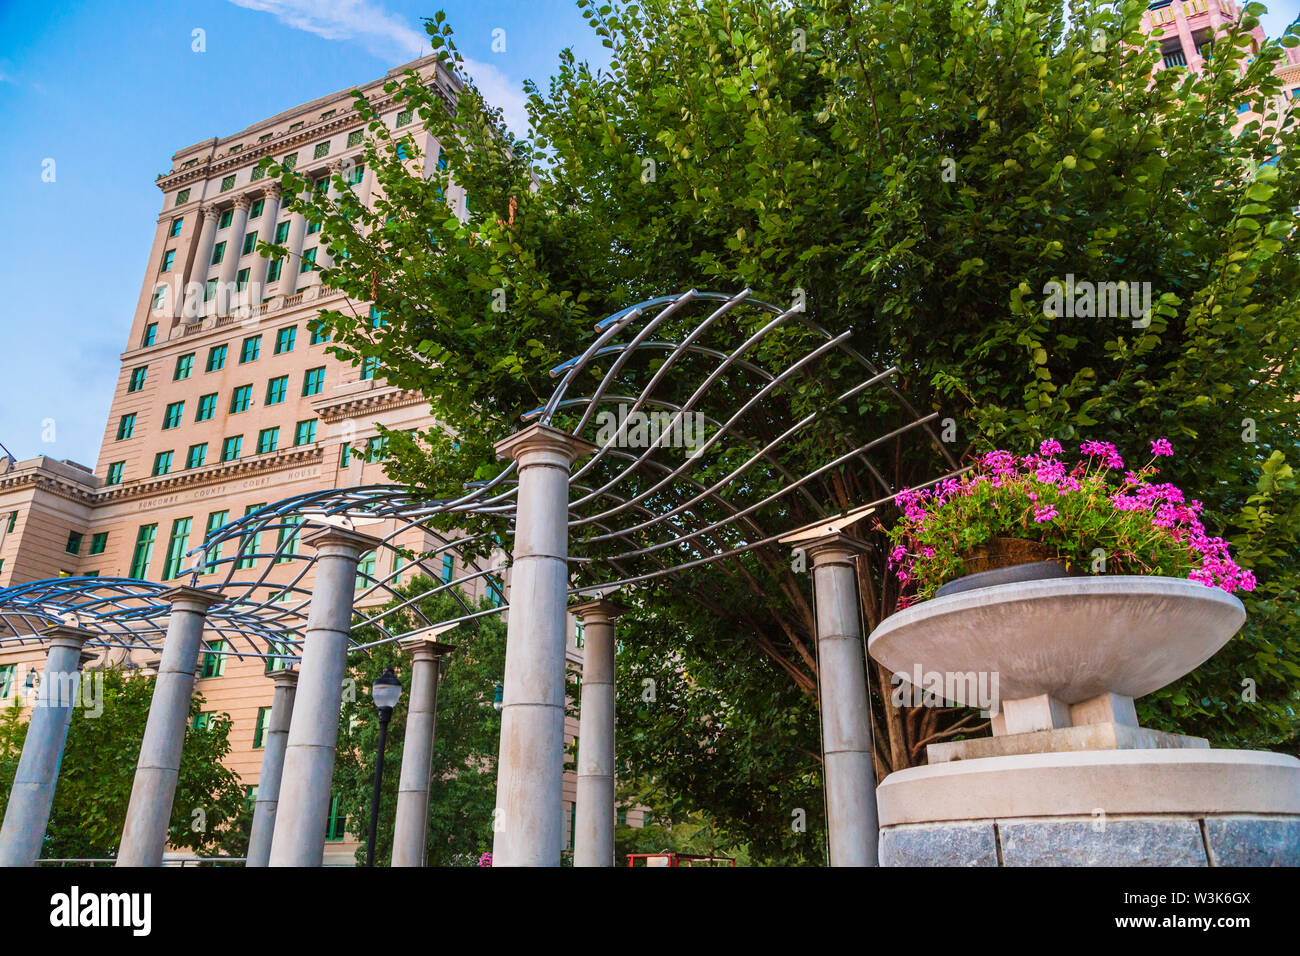 Buncombe County Courthouse and Pack Square Park, Asheville, North Carolina, USA. - Stock Image